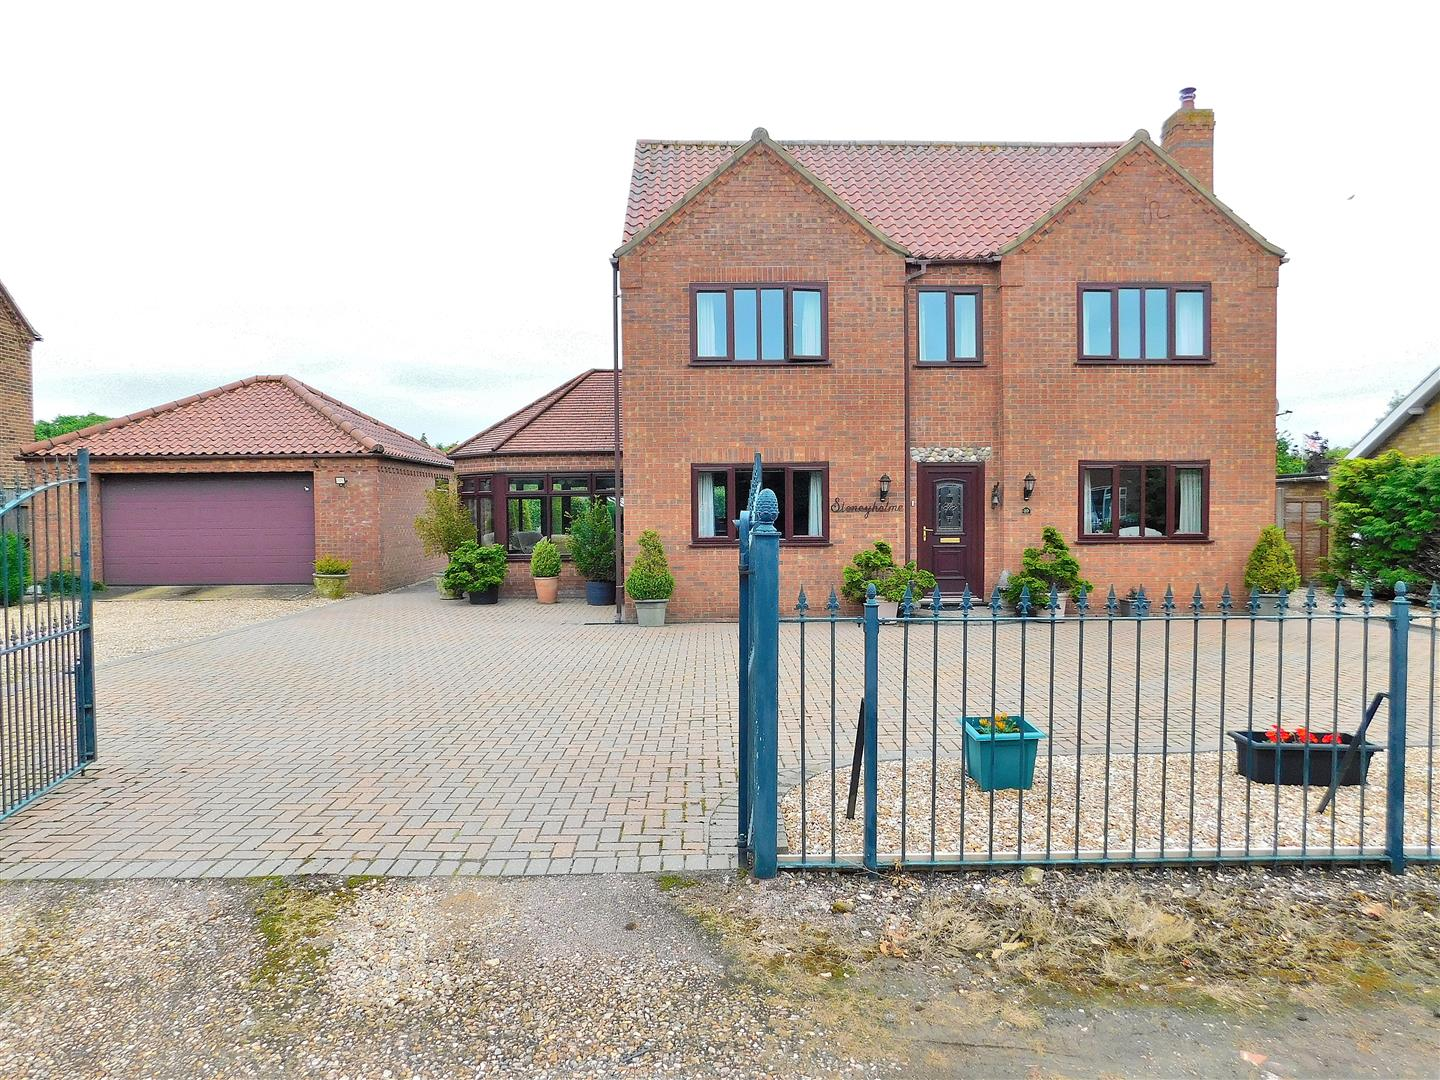 3 bed detached house for sale in Popes Lane, King's Lynn, PE34